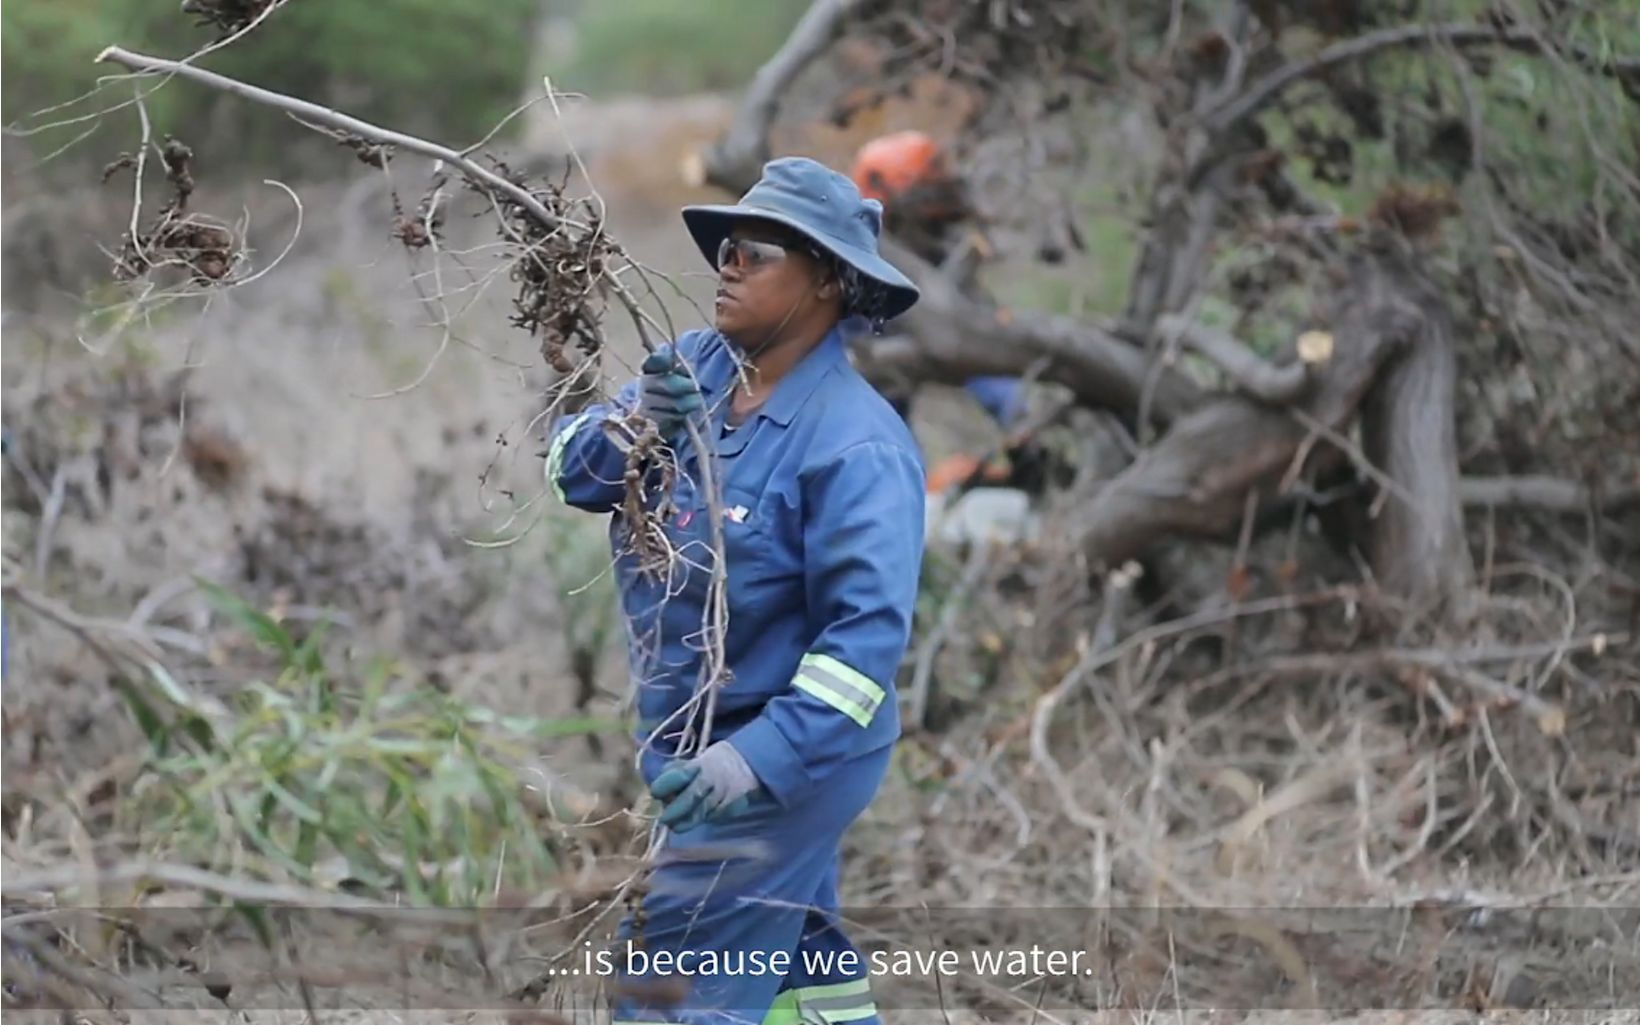 In conjunction with the launch of the new Waterless hair care collection in South Africa, P&G has stepped in to support this critical work with a $100,000 contribution that will help TNC's efforts to return 55 billion liters of water to the region's supply system.